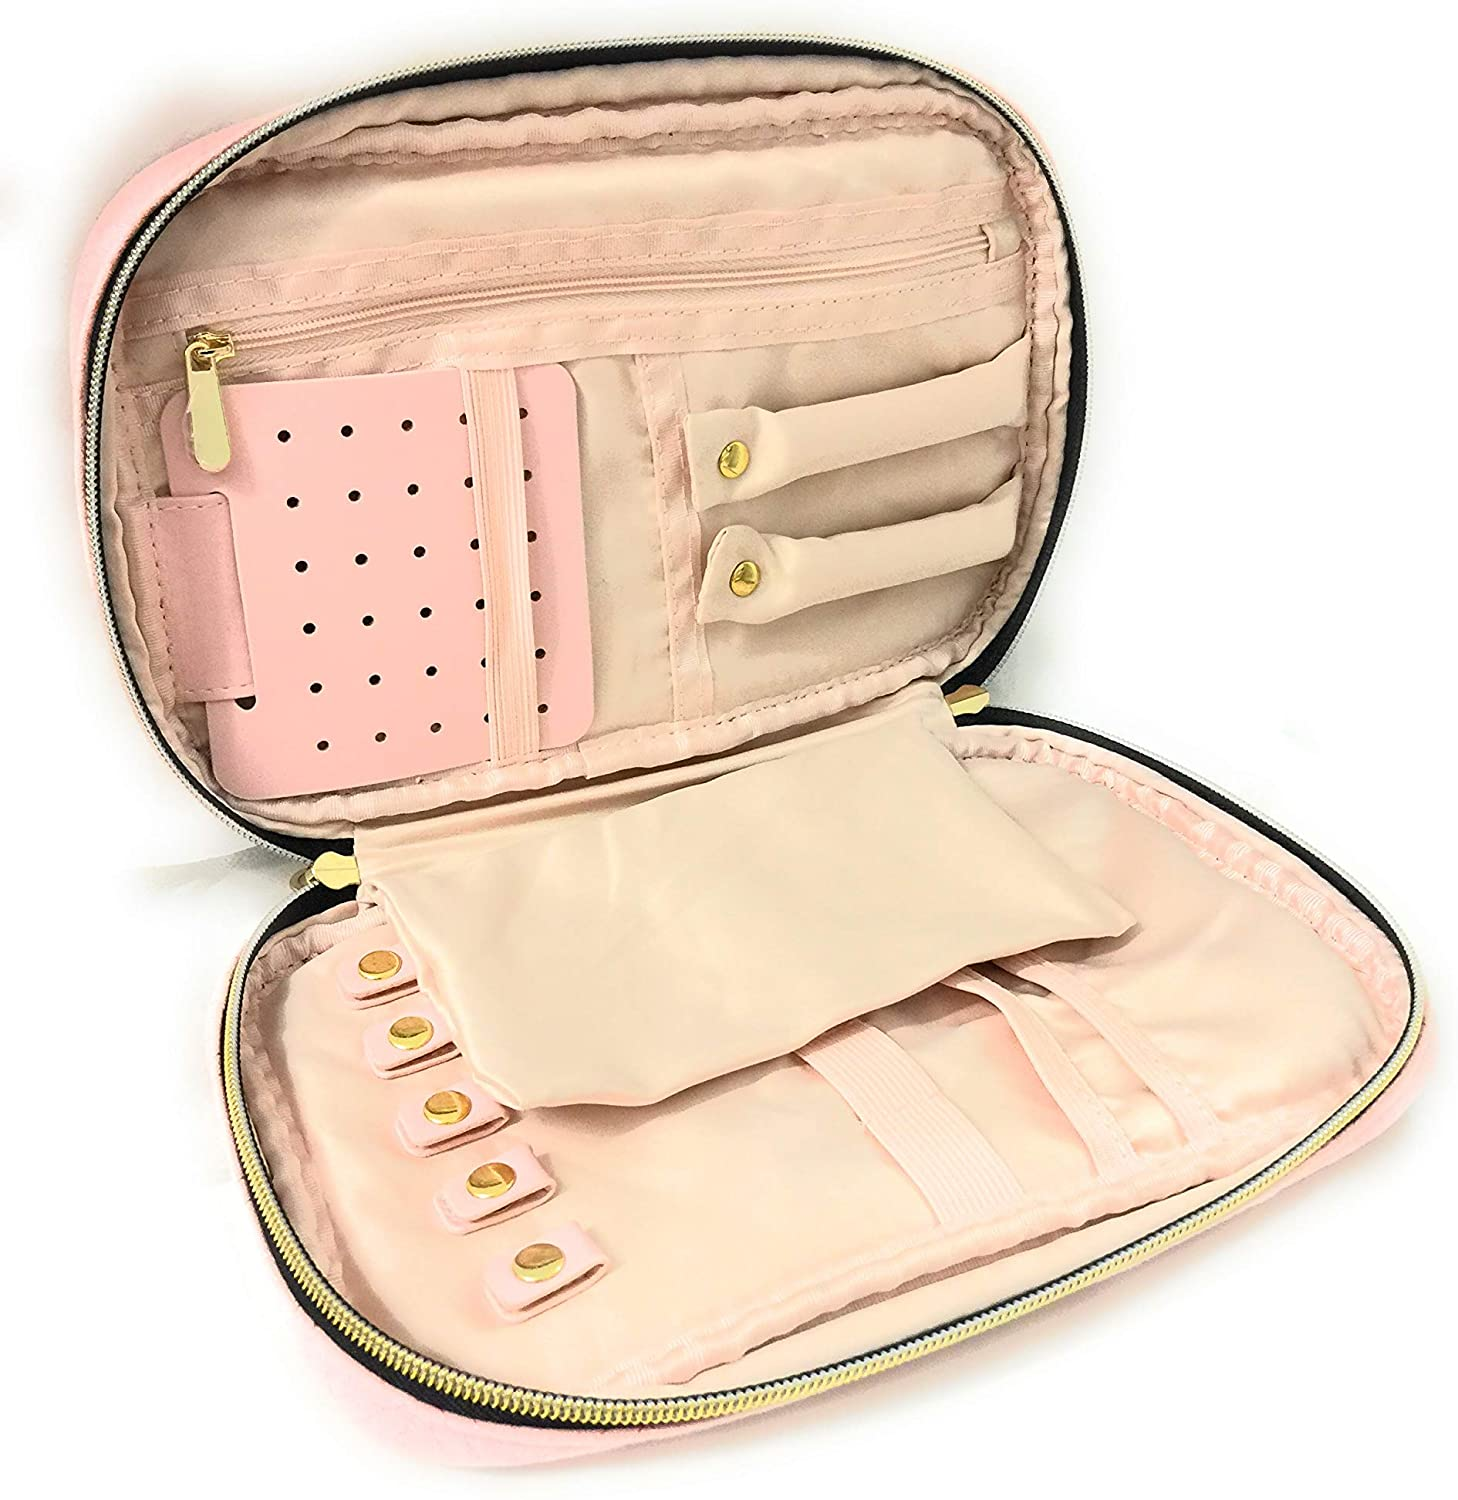 Dino and Lotus Travel Jewelry Organizer | Small Jewelry Organizer Box, Jewelry Organizer Box with Functional Compartments for Necklaces, Rings, Earrings, Bracelets, Watches – Soft Pink